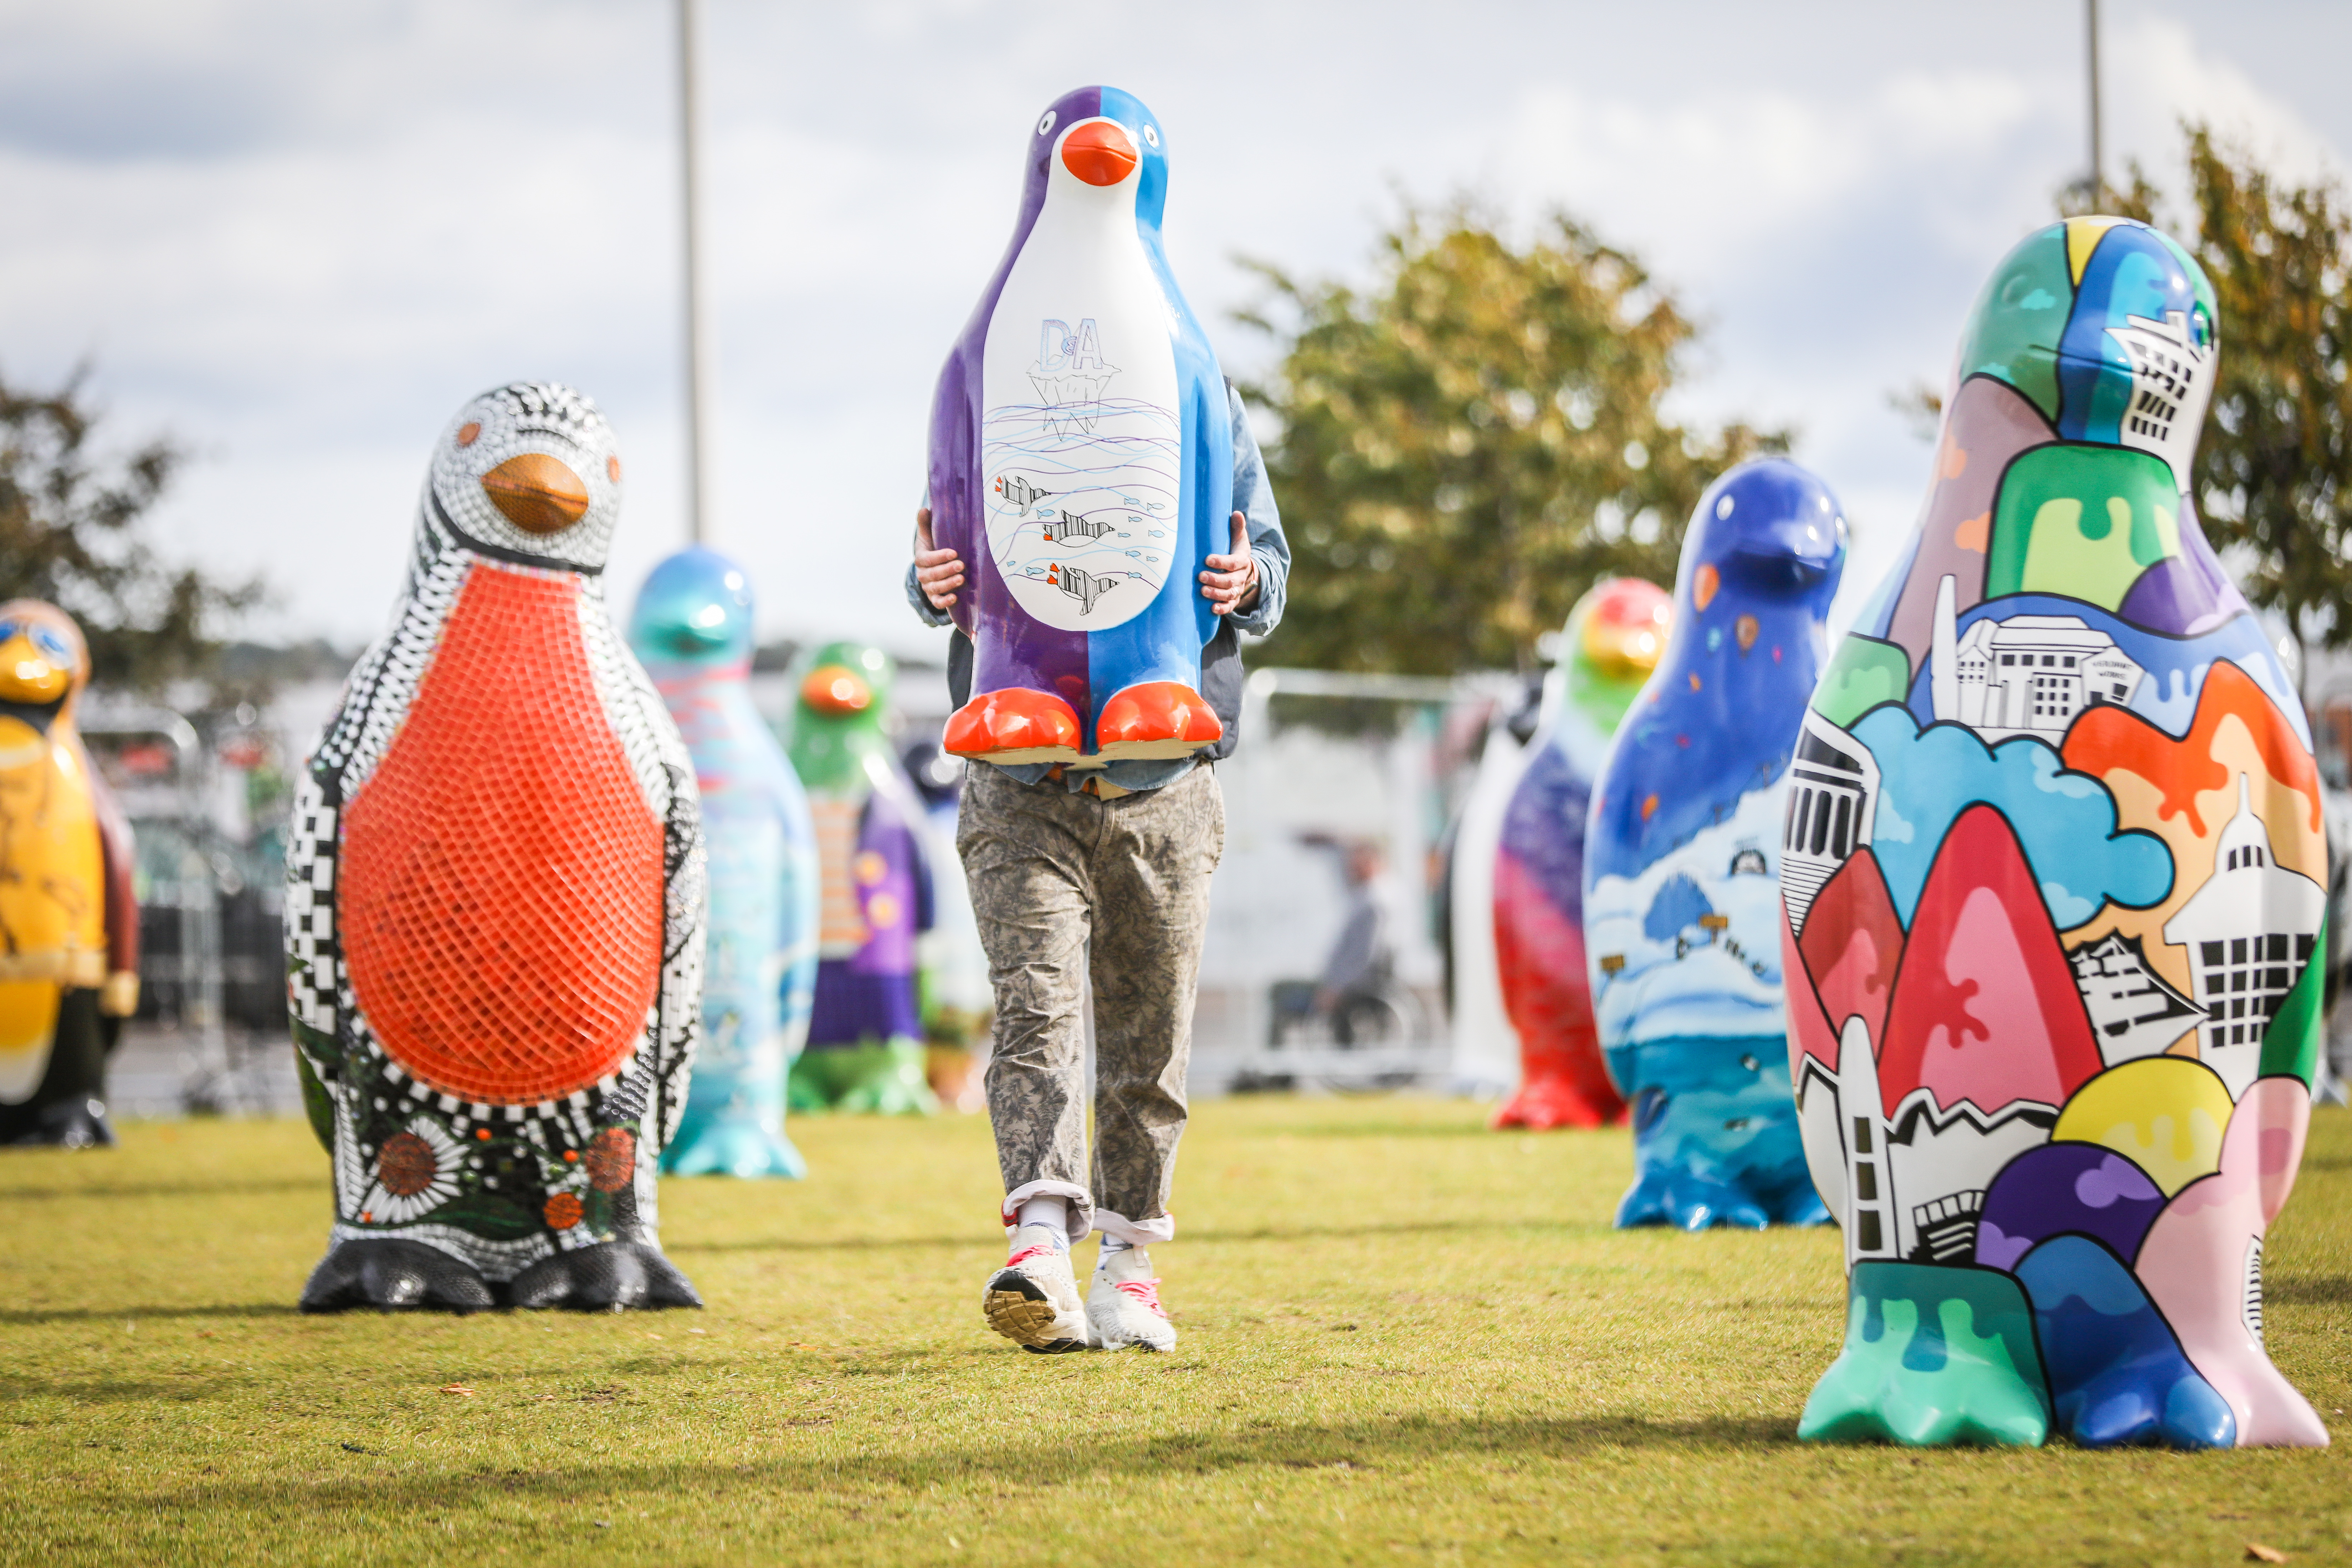 A new penguin will be designed for the Culture Crawl.